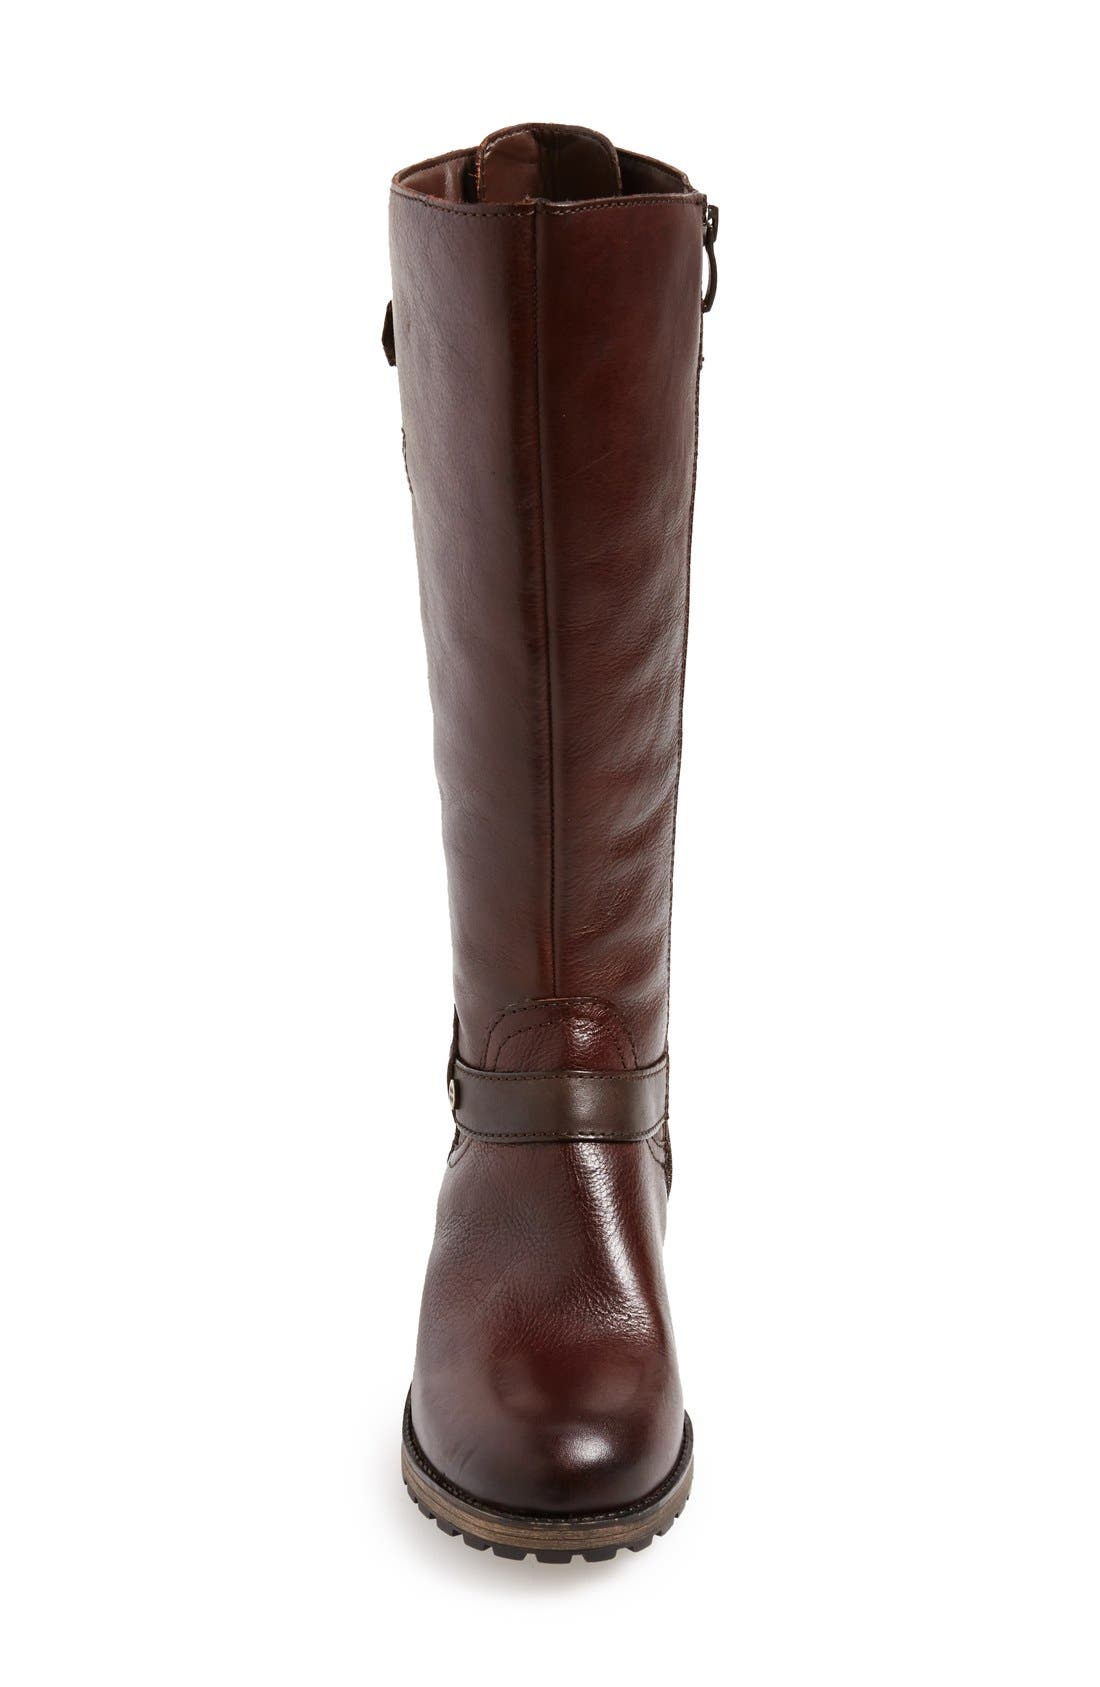 'Tanita' Boot,                             Alternate thumbnail 2, color,                             Tan Leather Wide Calf